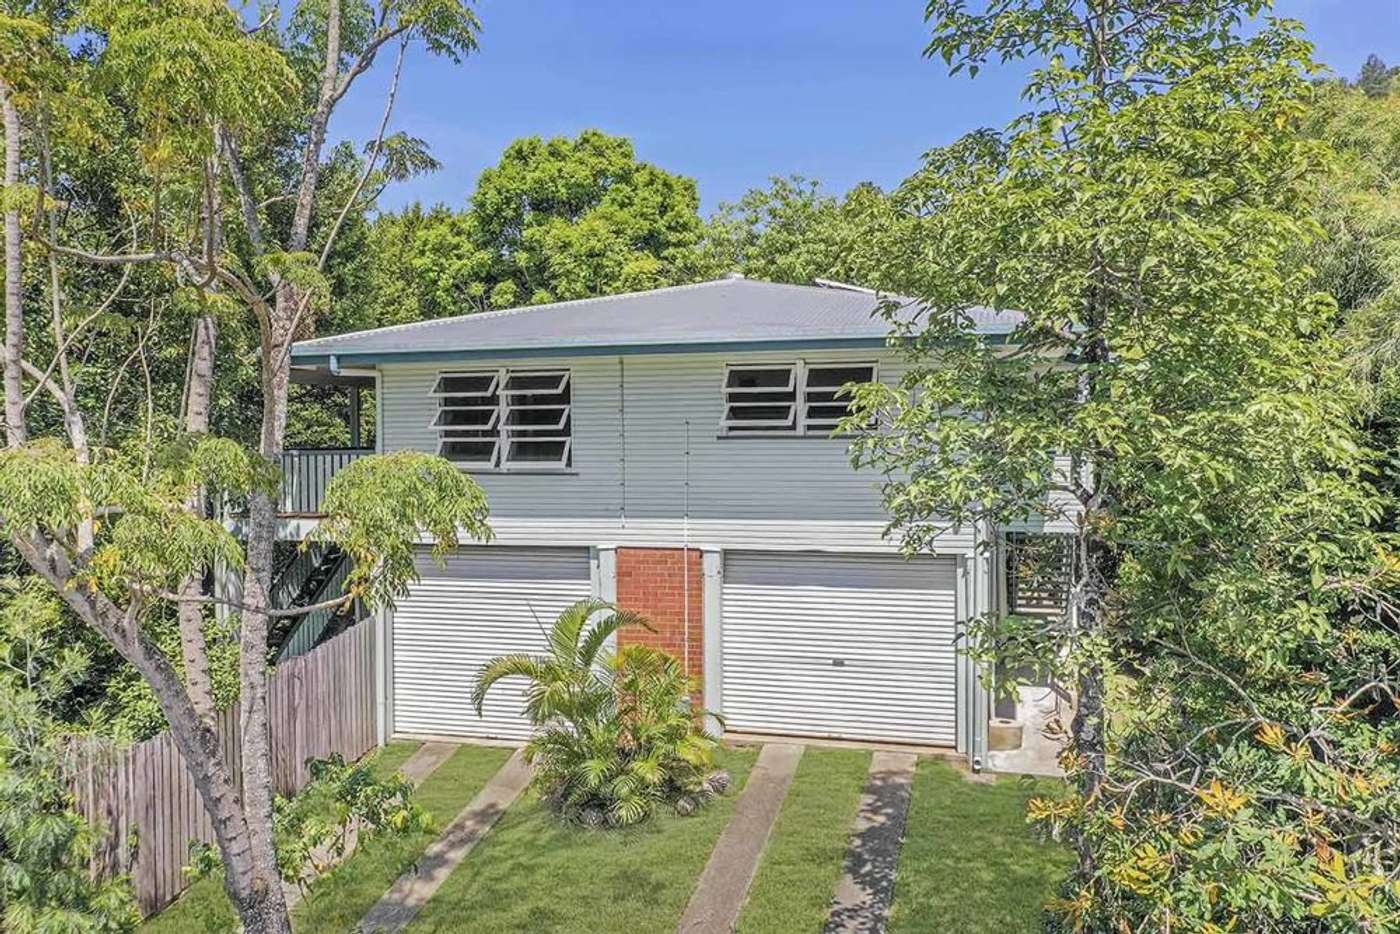 Main view of Homely house listing, 61 Hillview Crescent, Whitfield QLD 4870